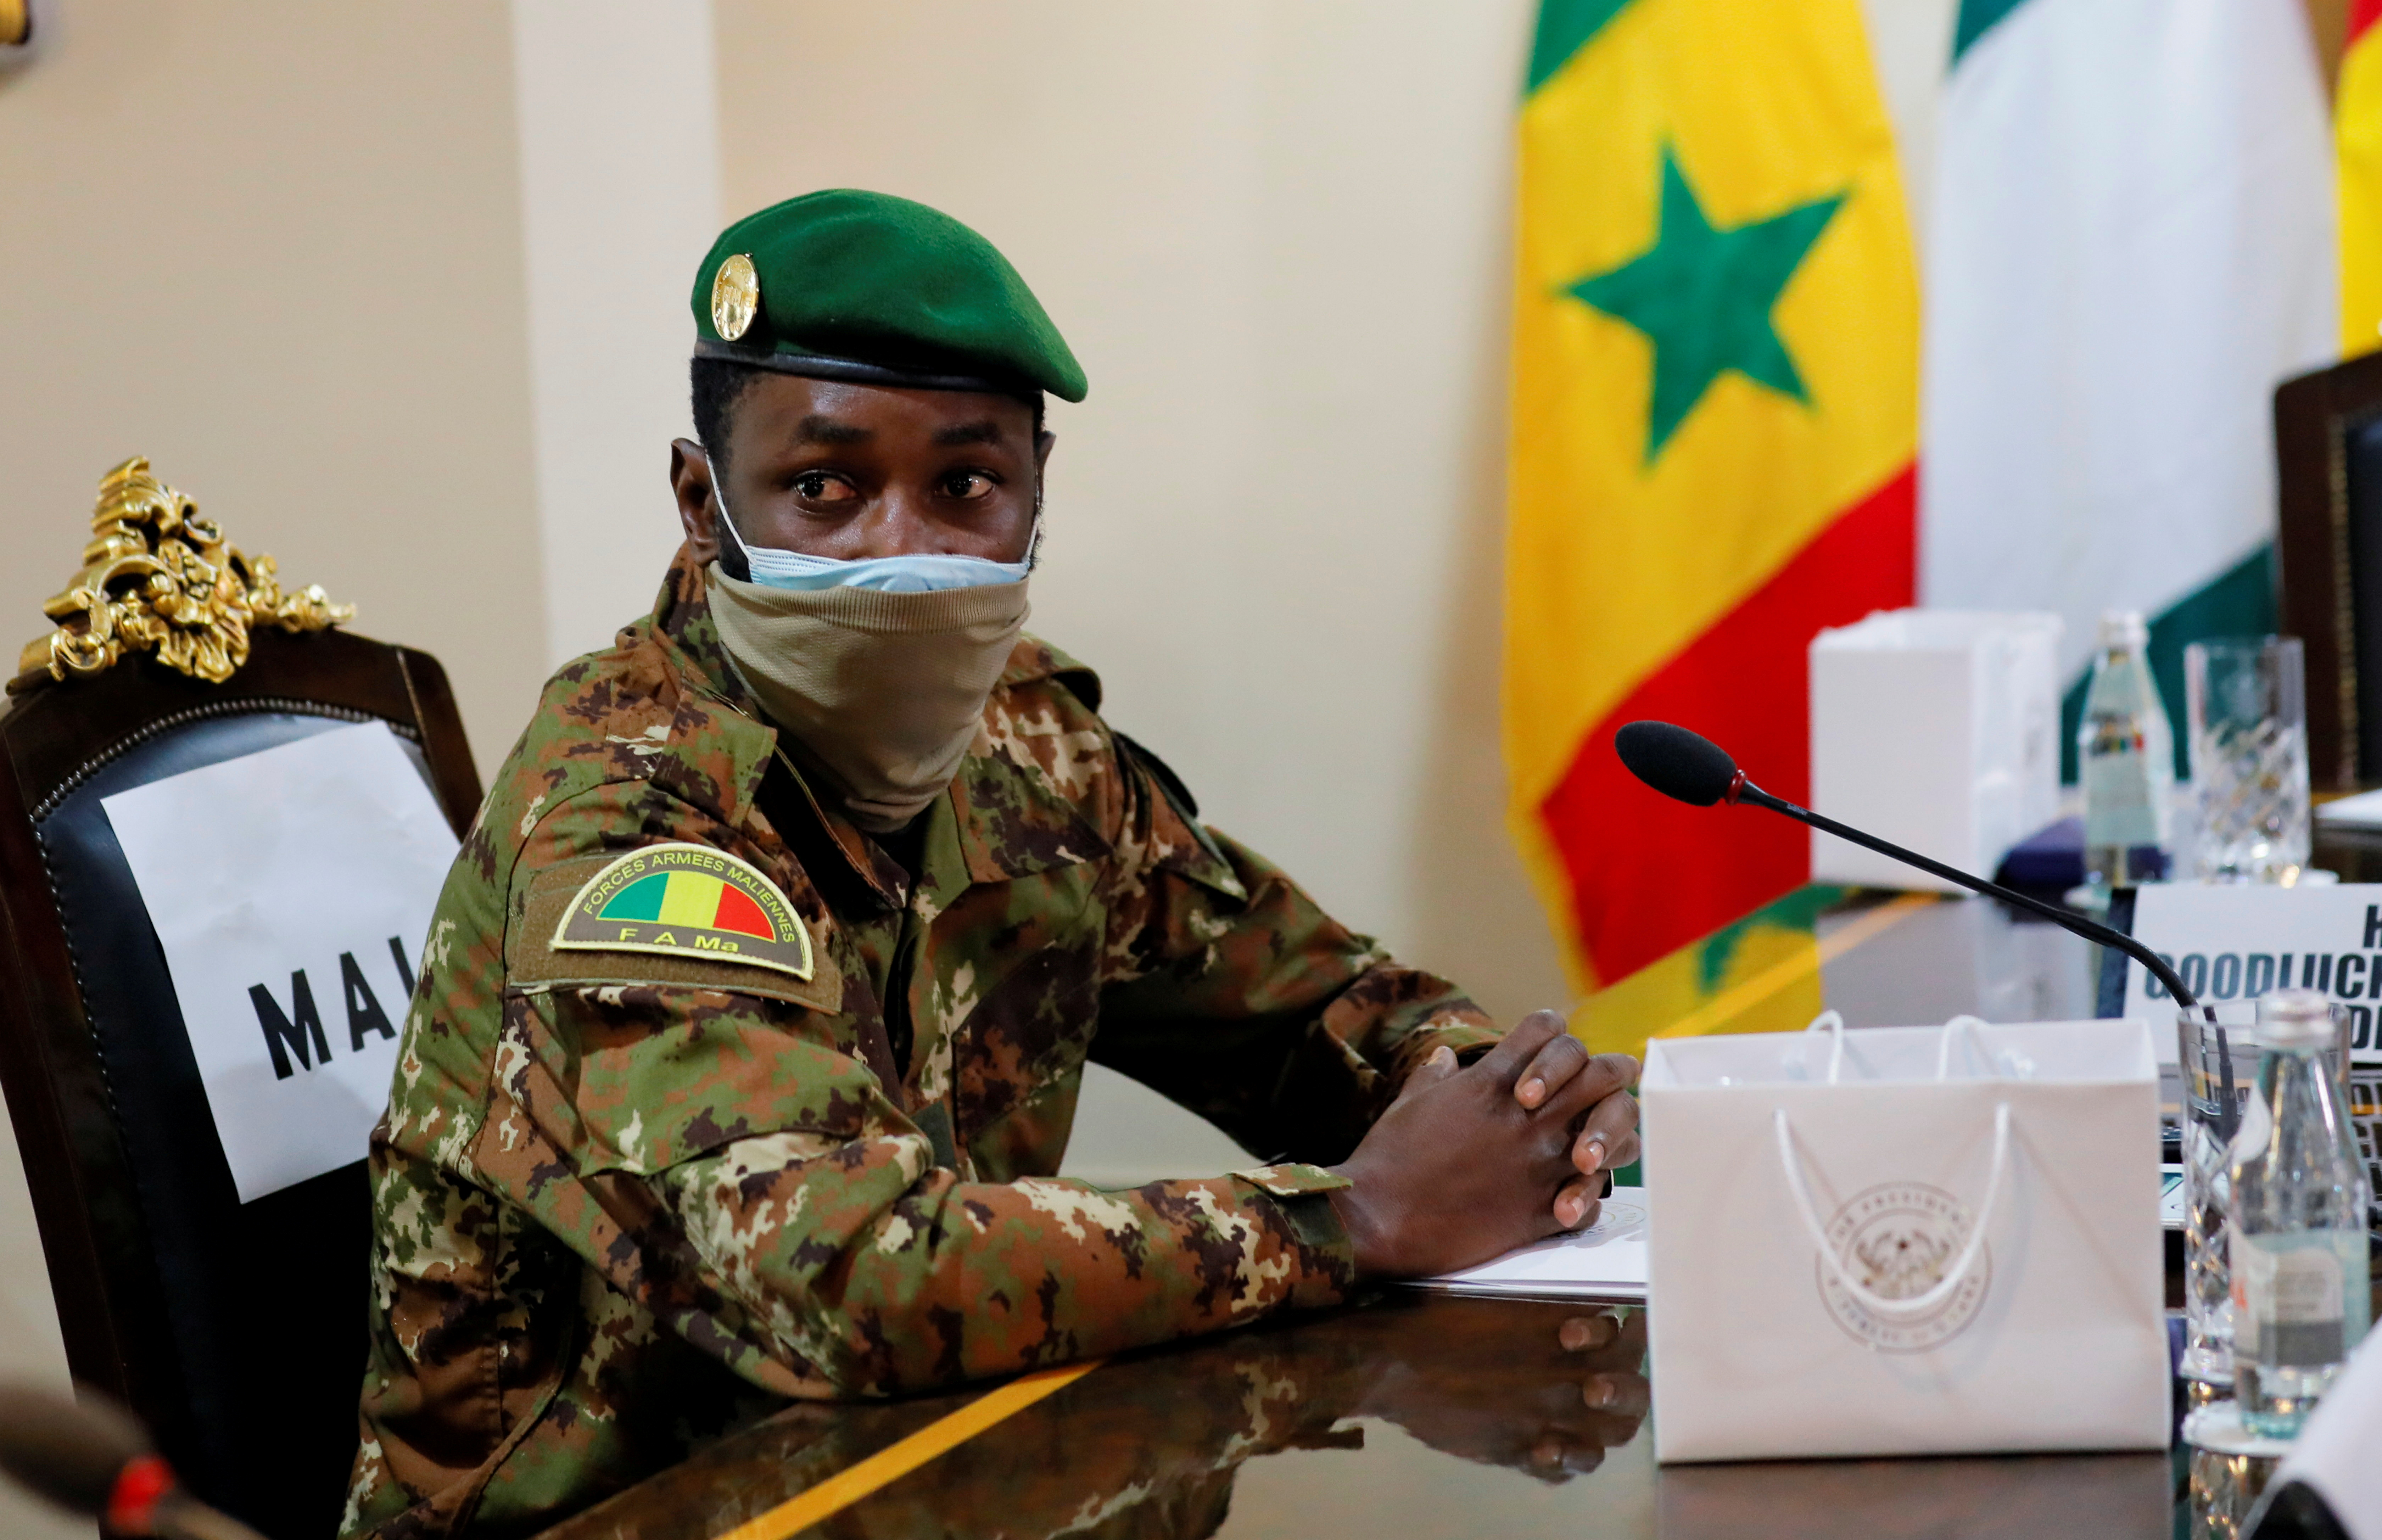 Colonel Assimi Goita, leader of Malian military junta, attends the Economic Community of West African States (ECOWAS) consultative meeting in Accra, Ghana September 15, 2020. REUTERS/ Francis Kokoroko/File Photo